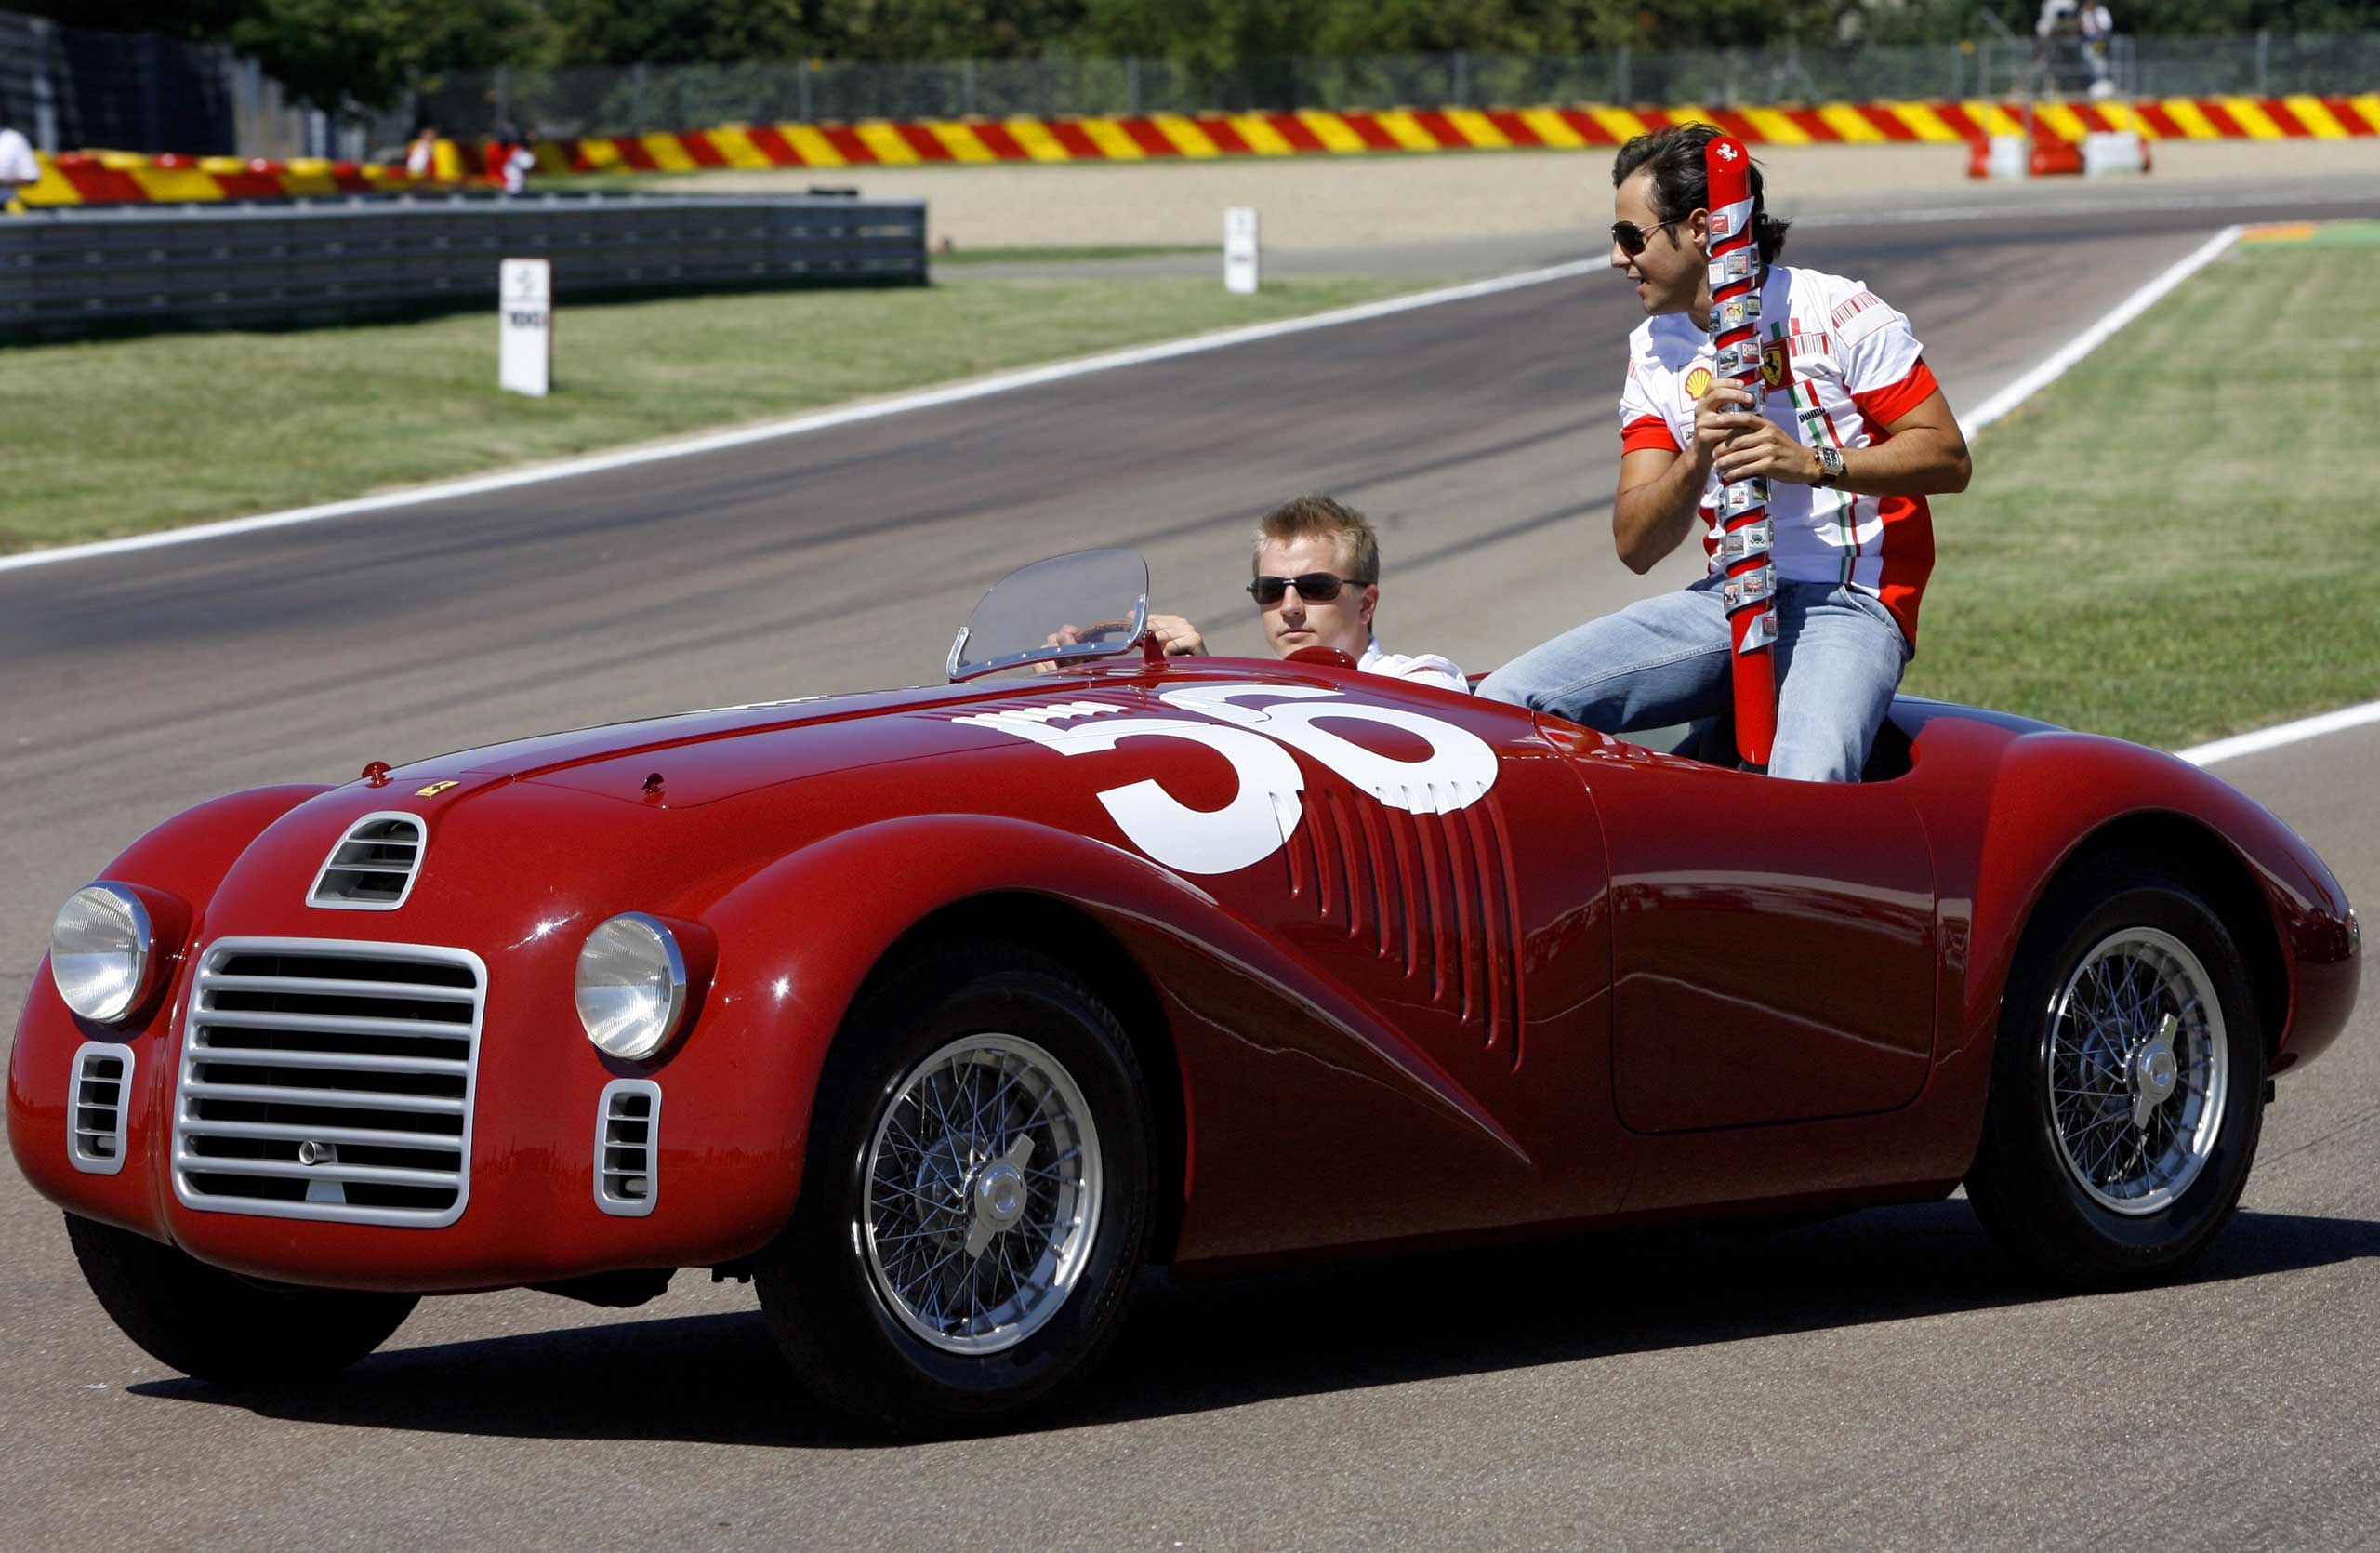 1947:  After two decades of manufacturing only race cars, Ferrari debuted its first road car, the 125 S.